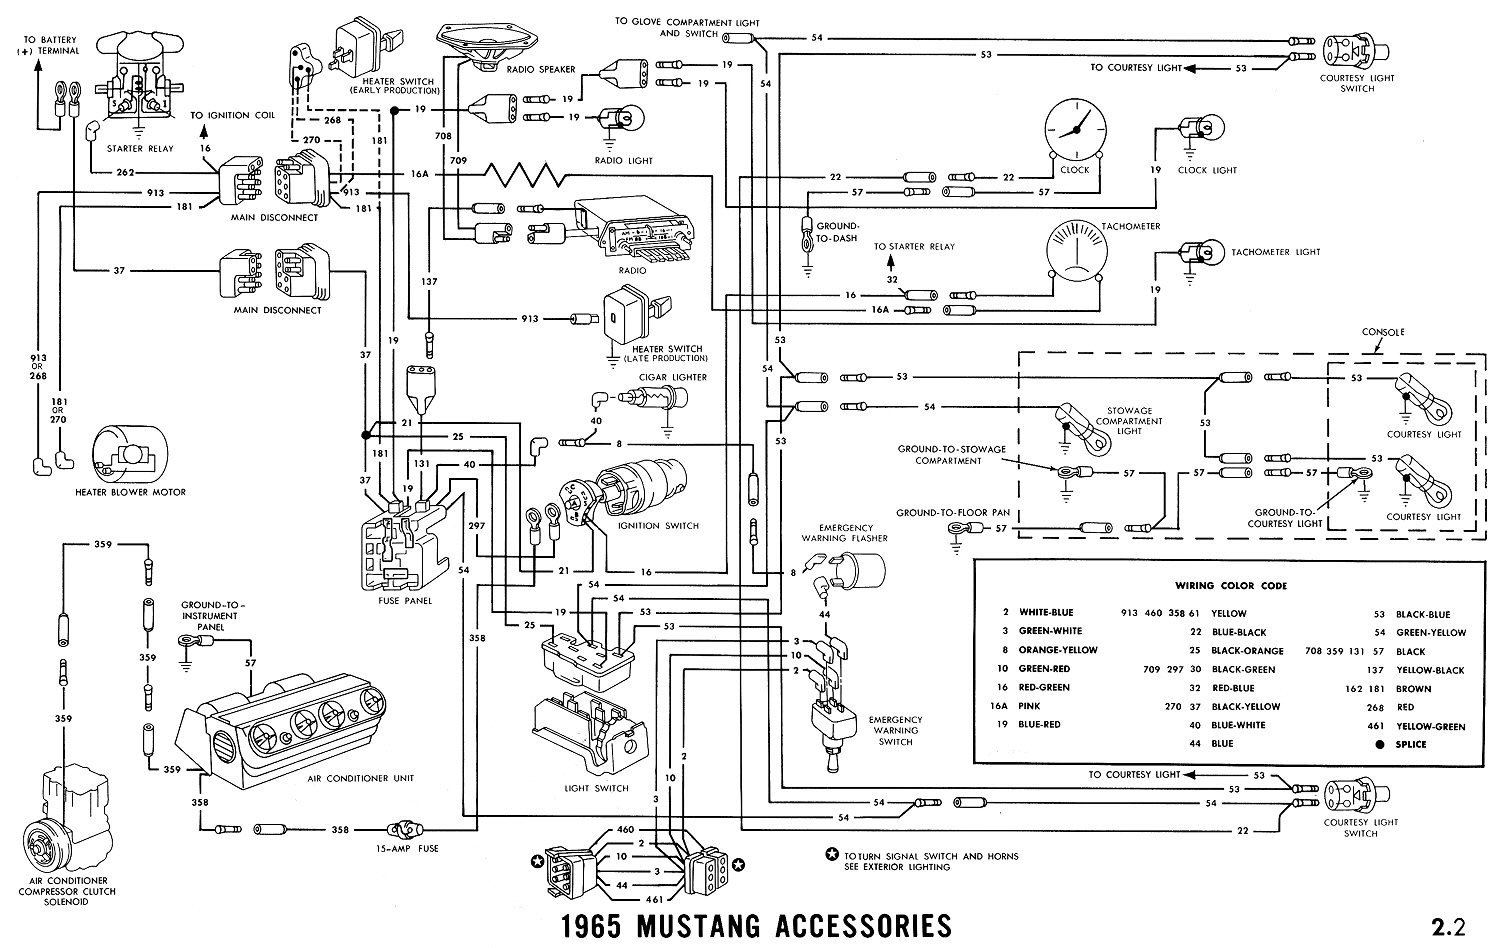 1965i 1965 mustang wiring diagrams average joe restoration 2005 mustang wiring diagram at n-0.co